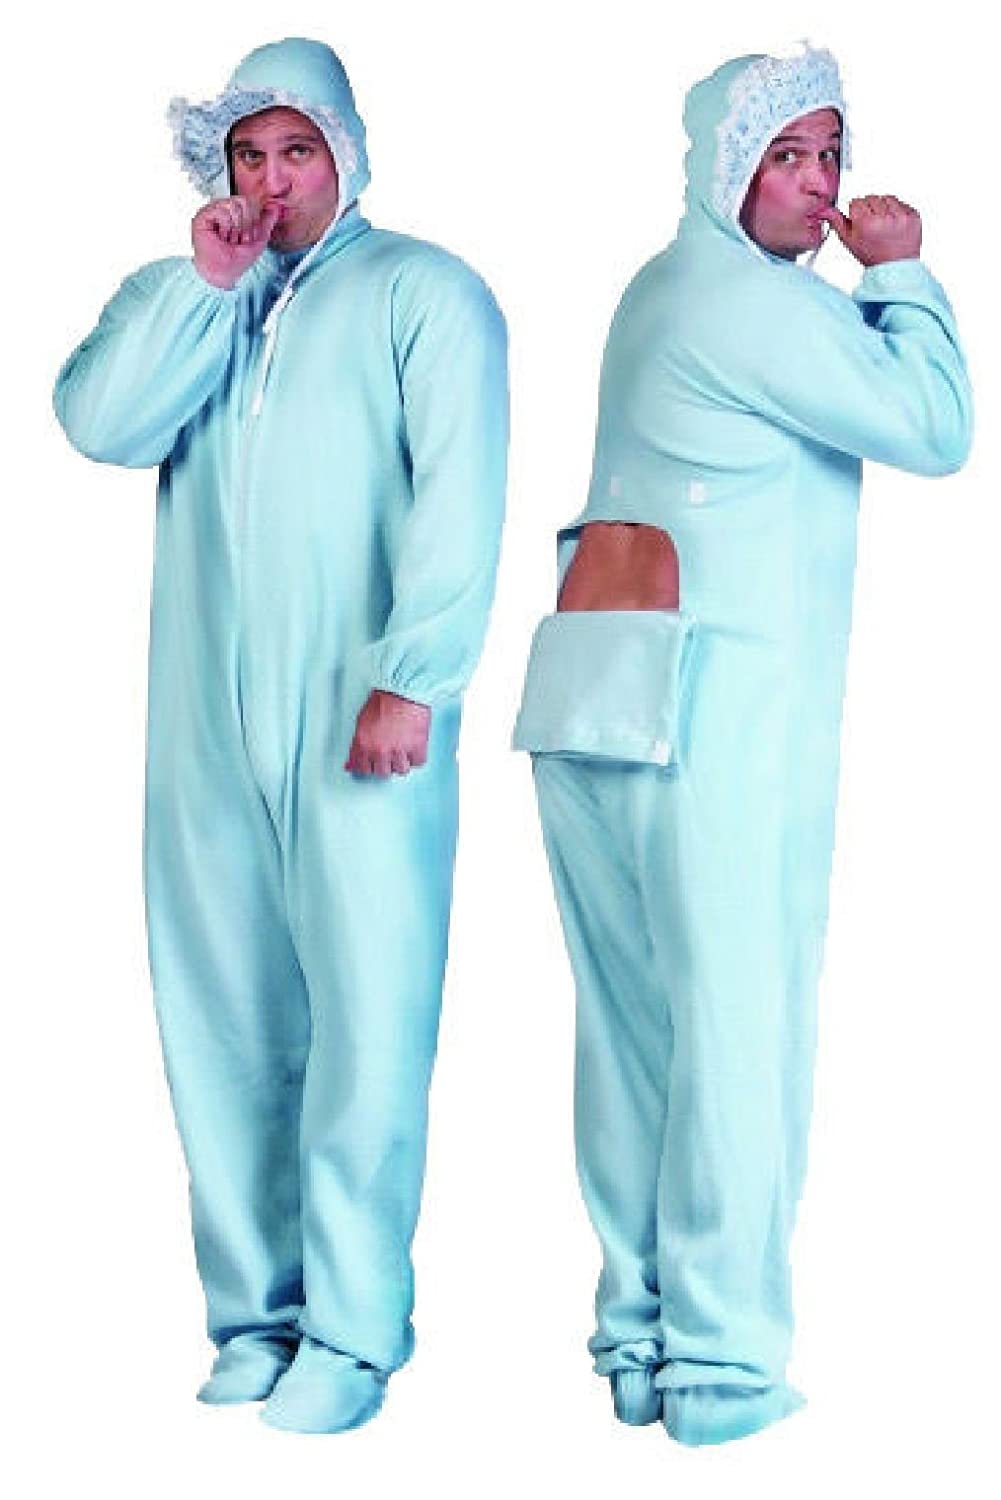 Amazon.com: OvedcRay Big Giant Baby Jammies Costumes Blue Pink Adult Baby  Costume Pajamas Jumpsuit: Clothing